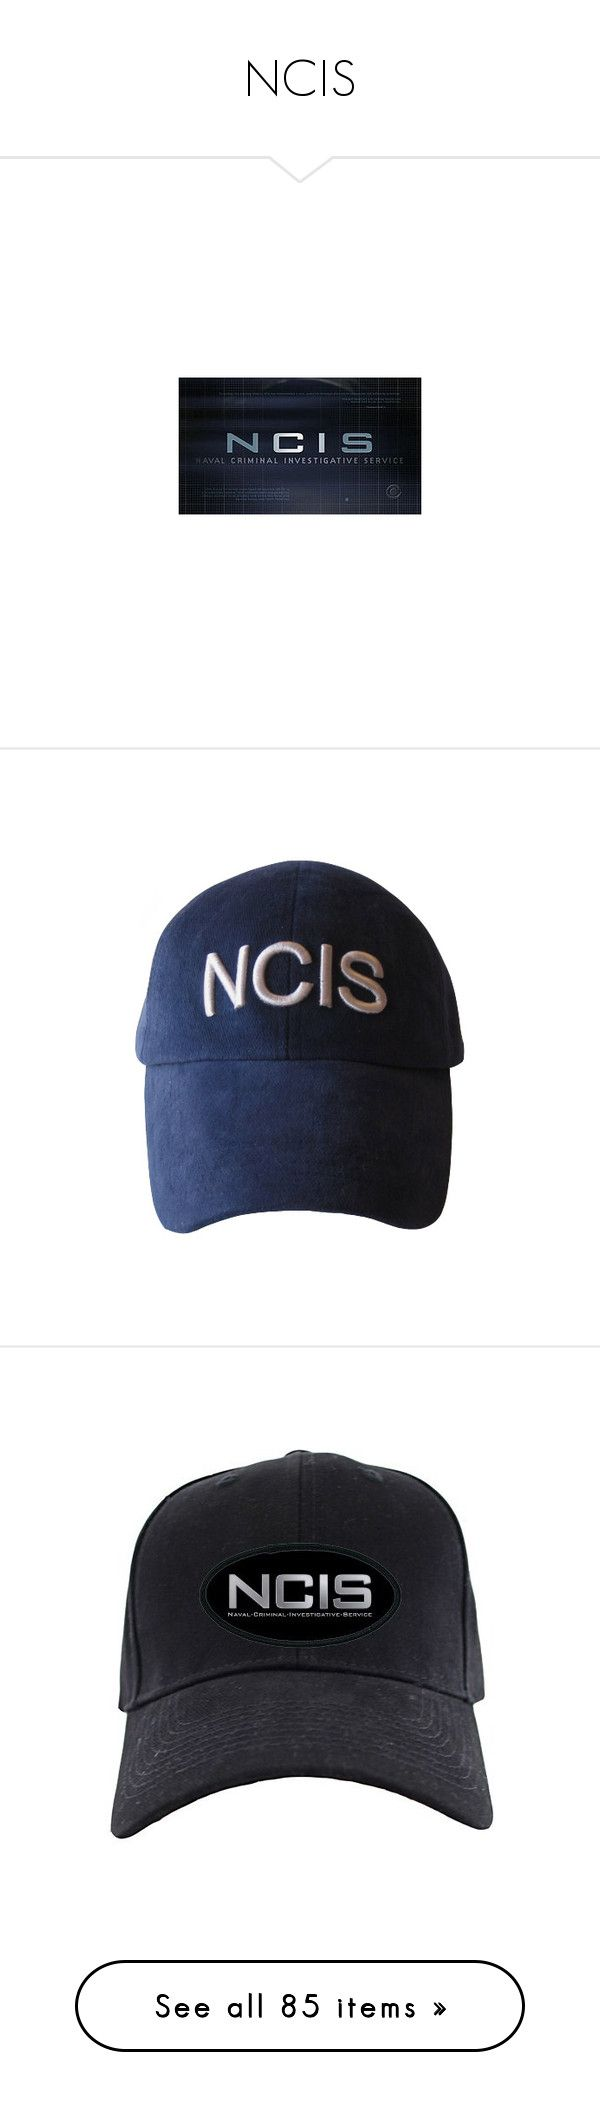 """""""NCIS"""" by lily-mae ❤ liked on Polyvore featuring ncis, accessories, hats, cap hats, police, spy, stuff, supernatural, random and tv"""